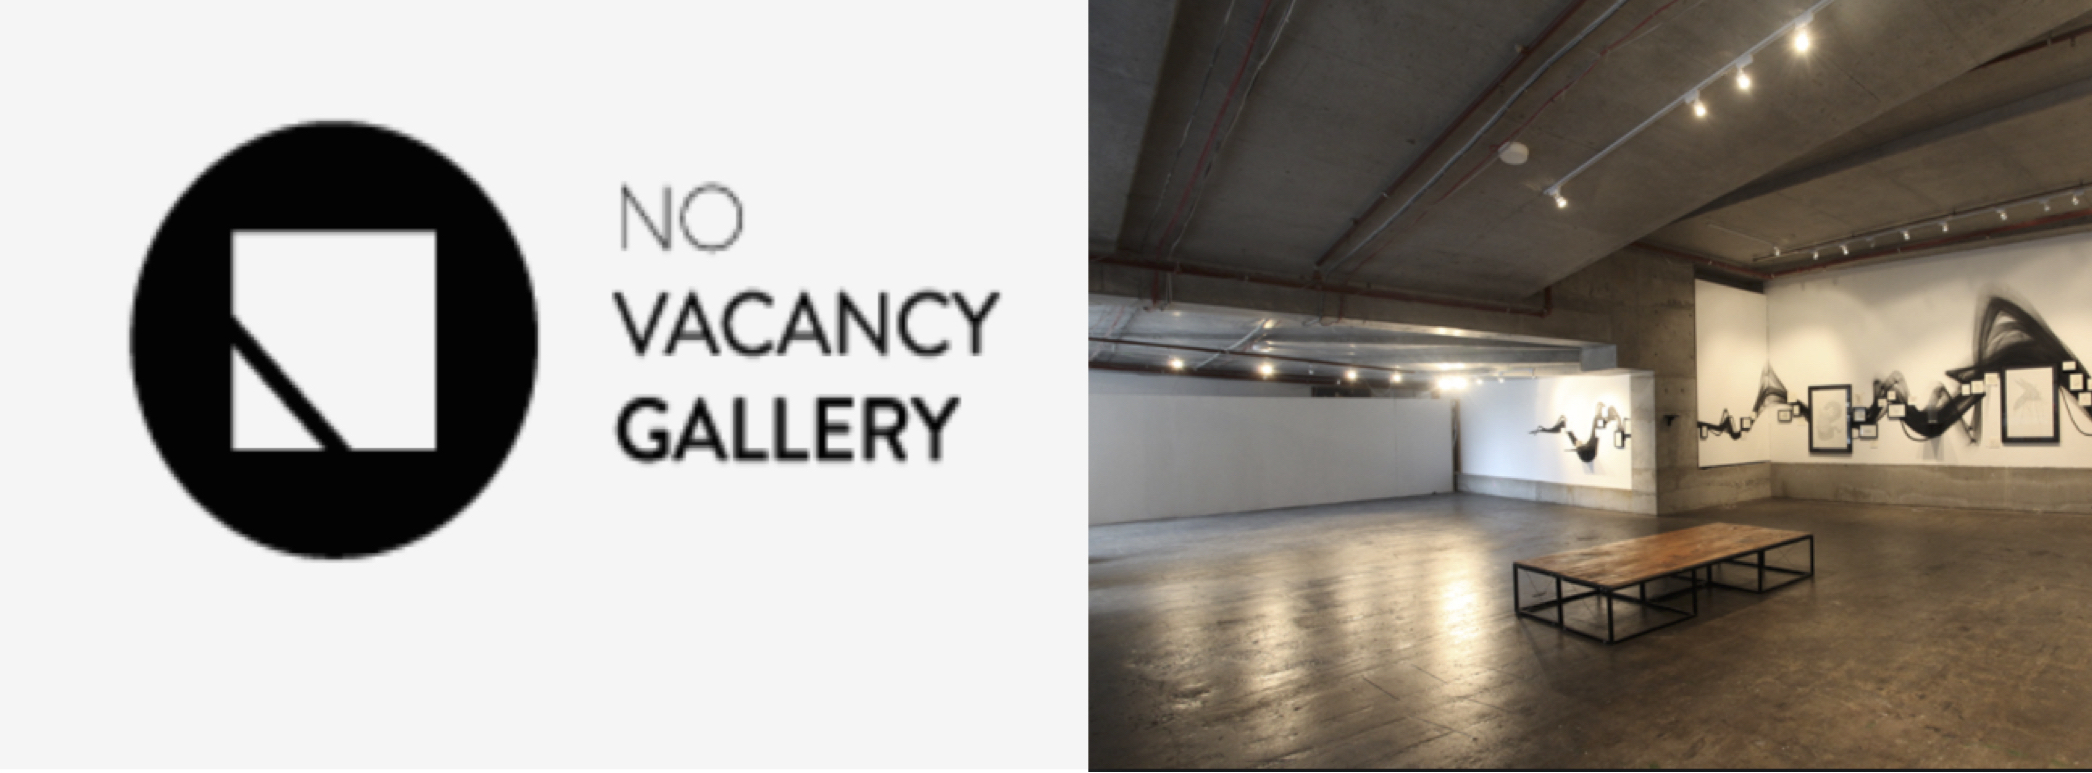 No Vacancy Gallery